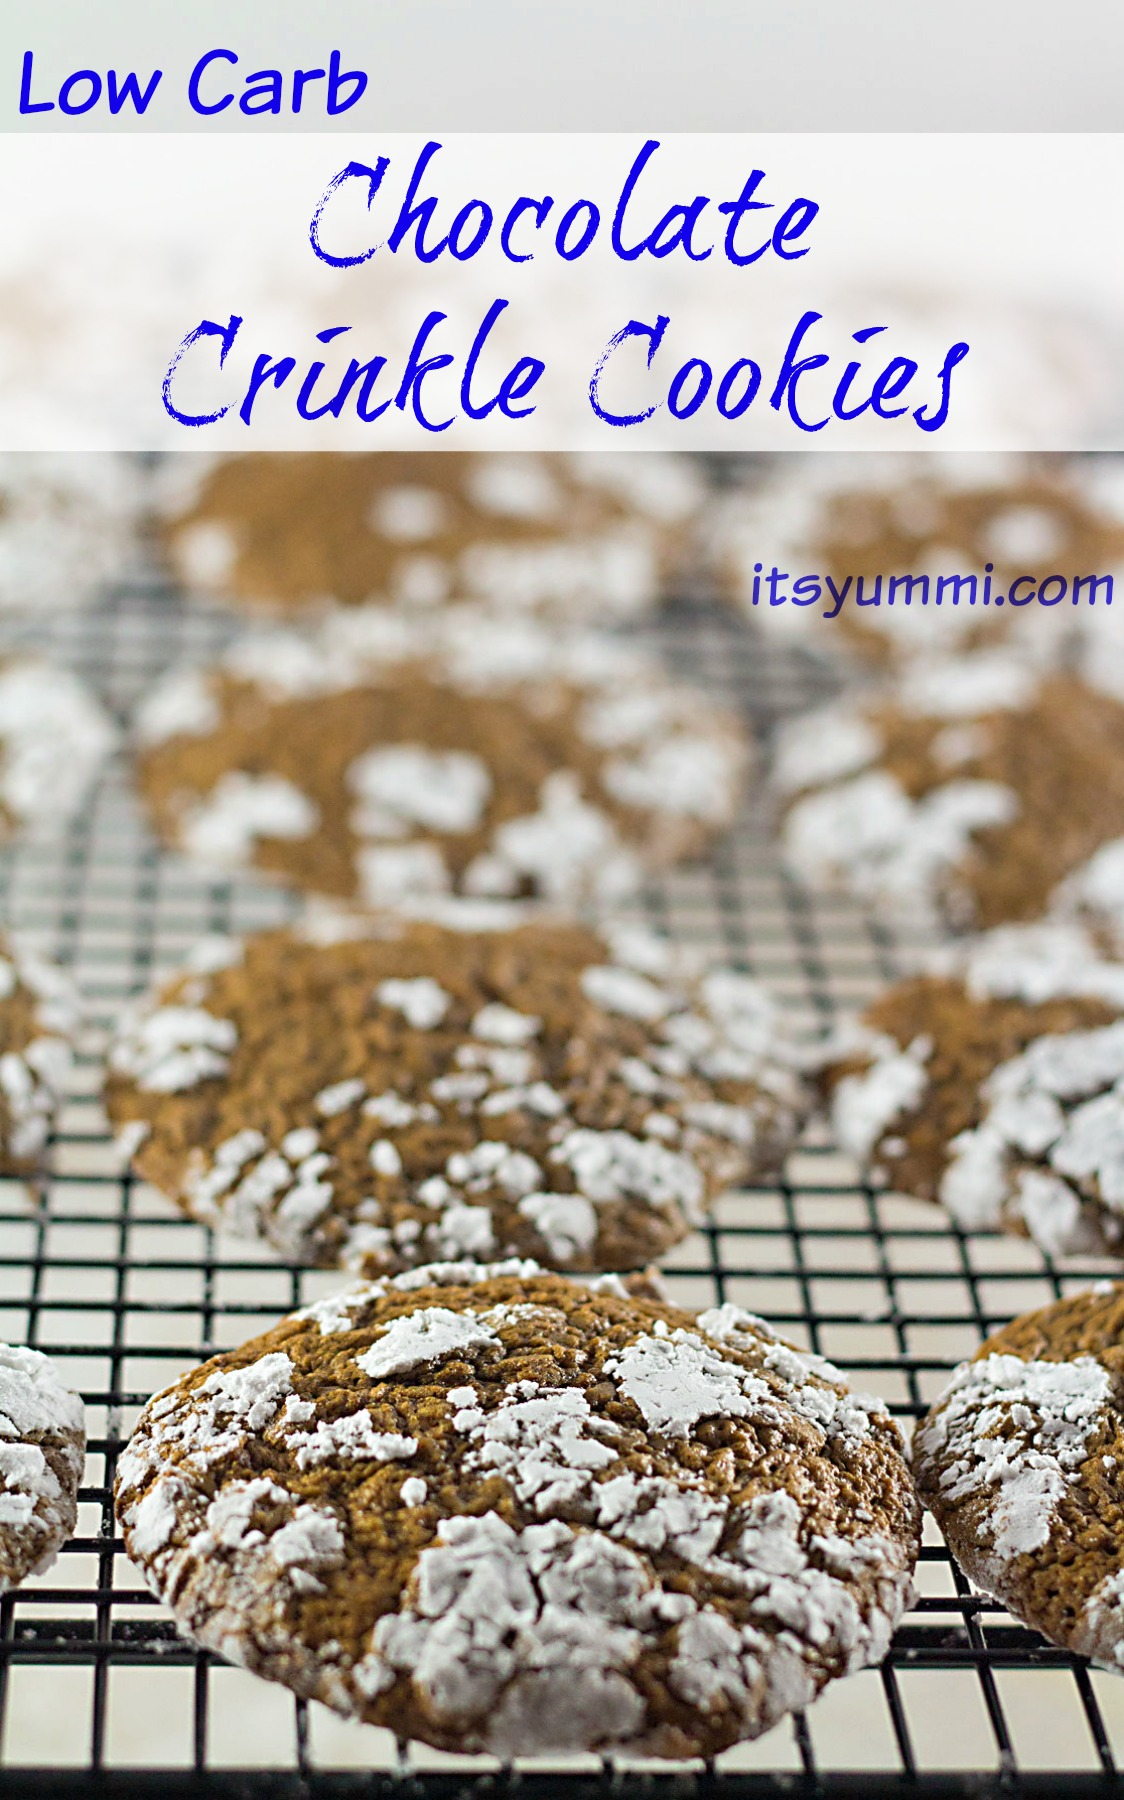 Holiday Cookie Recipes: Low Carb Chocolate Crinkles- from ItsYummi.com